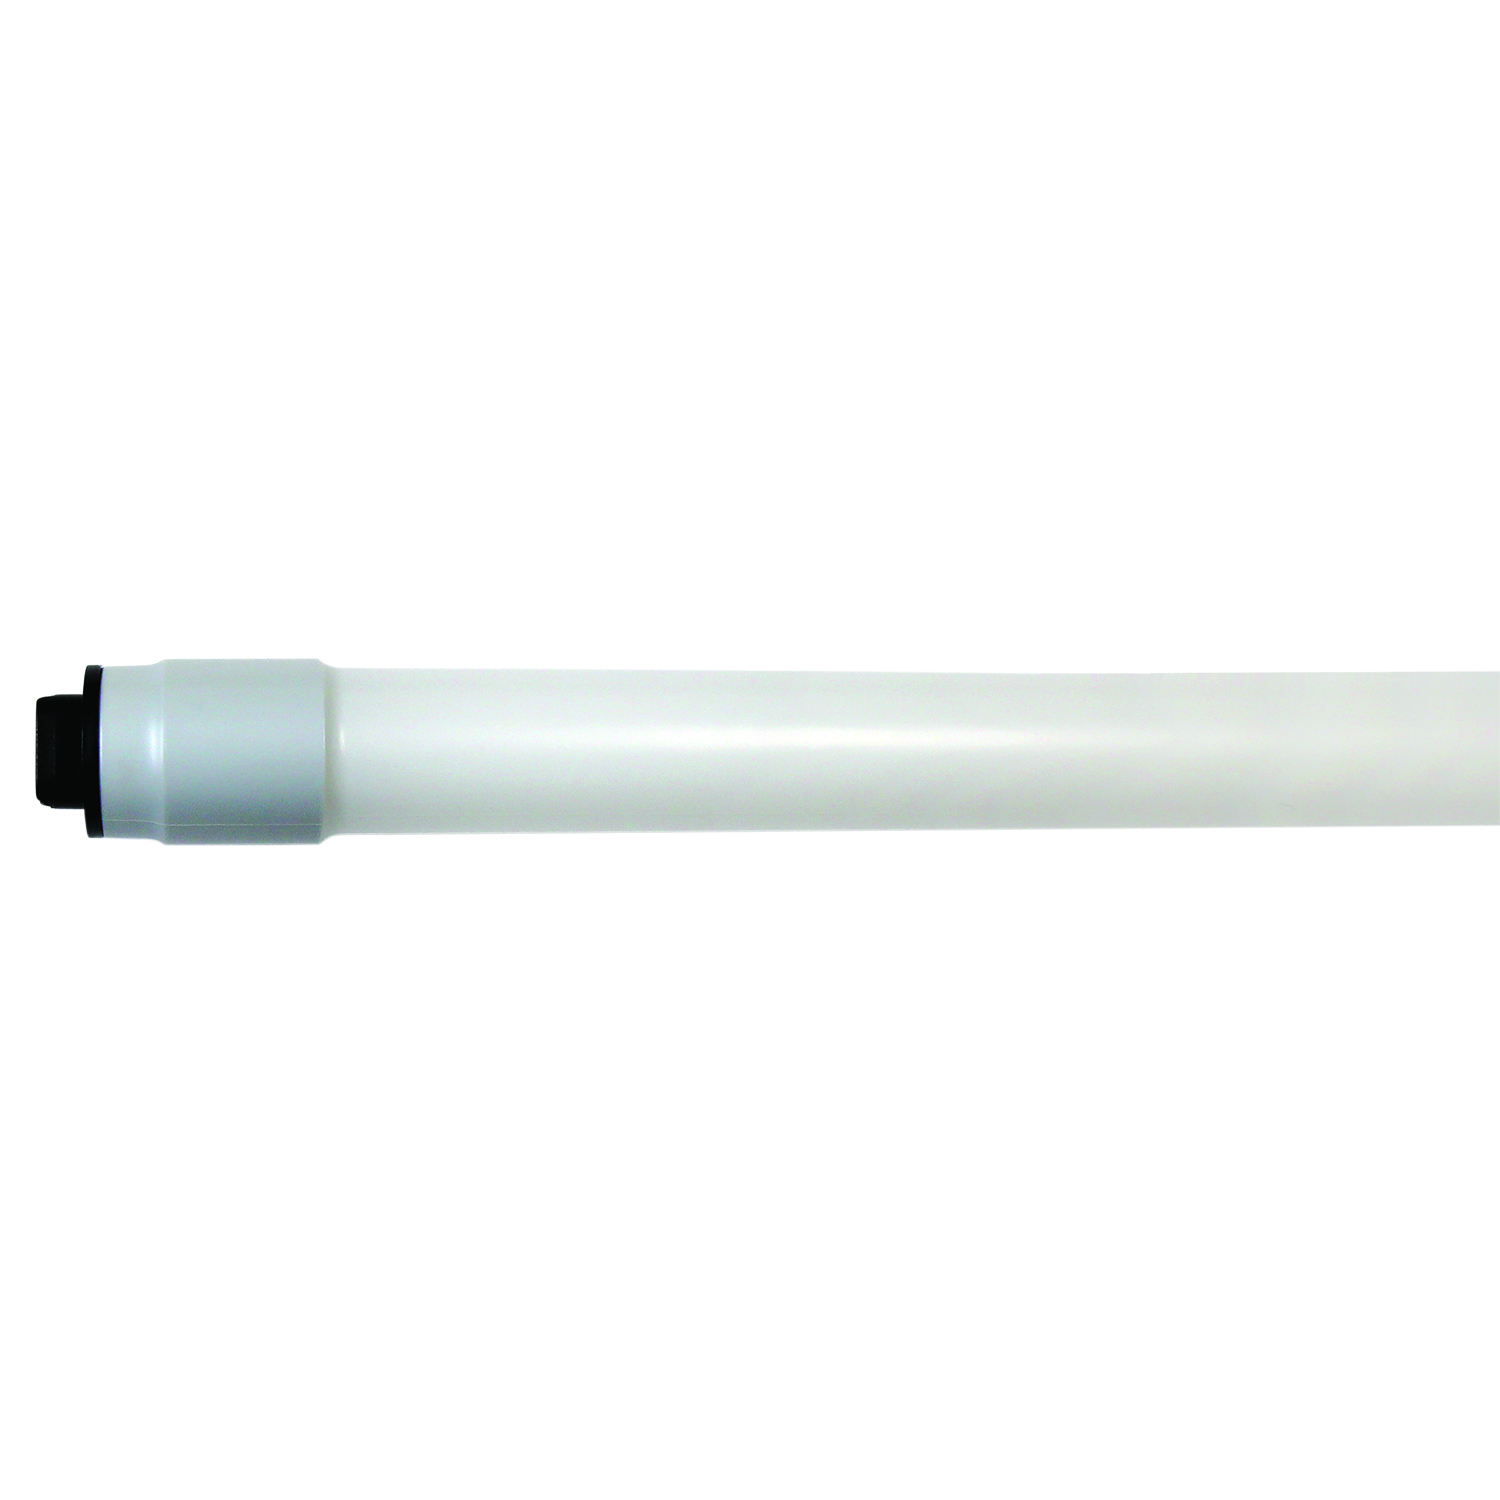 "T896FR42/865/BYP2/RDC/LED 82879 LED T8 96"" 42W 6500K Double-End Bypass Non-Dimmable R17d ProLED"